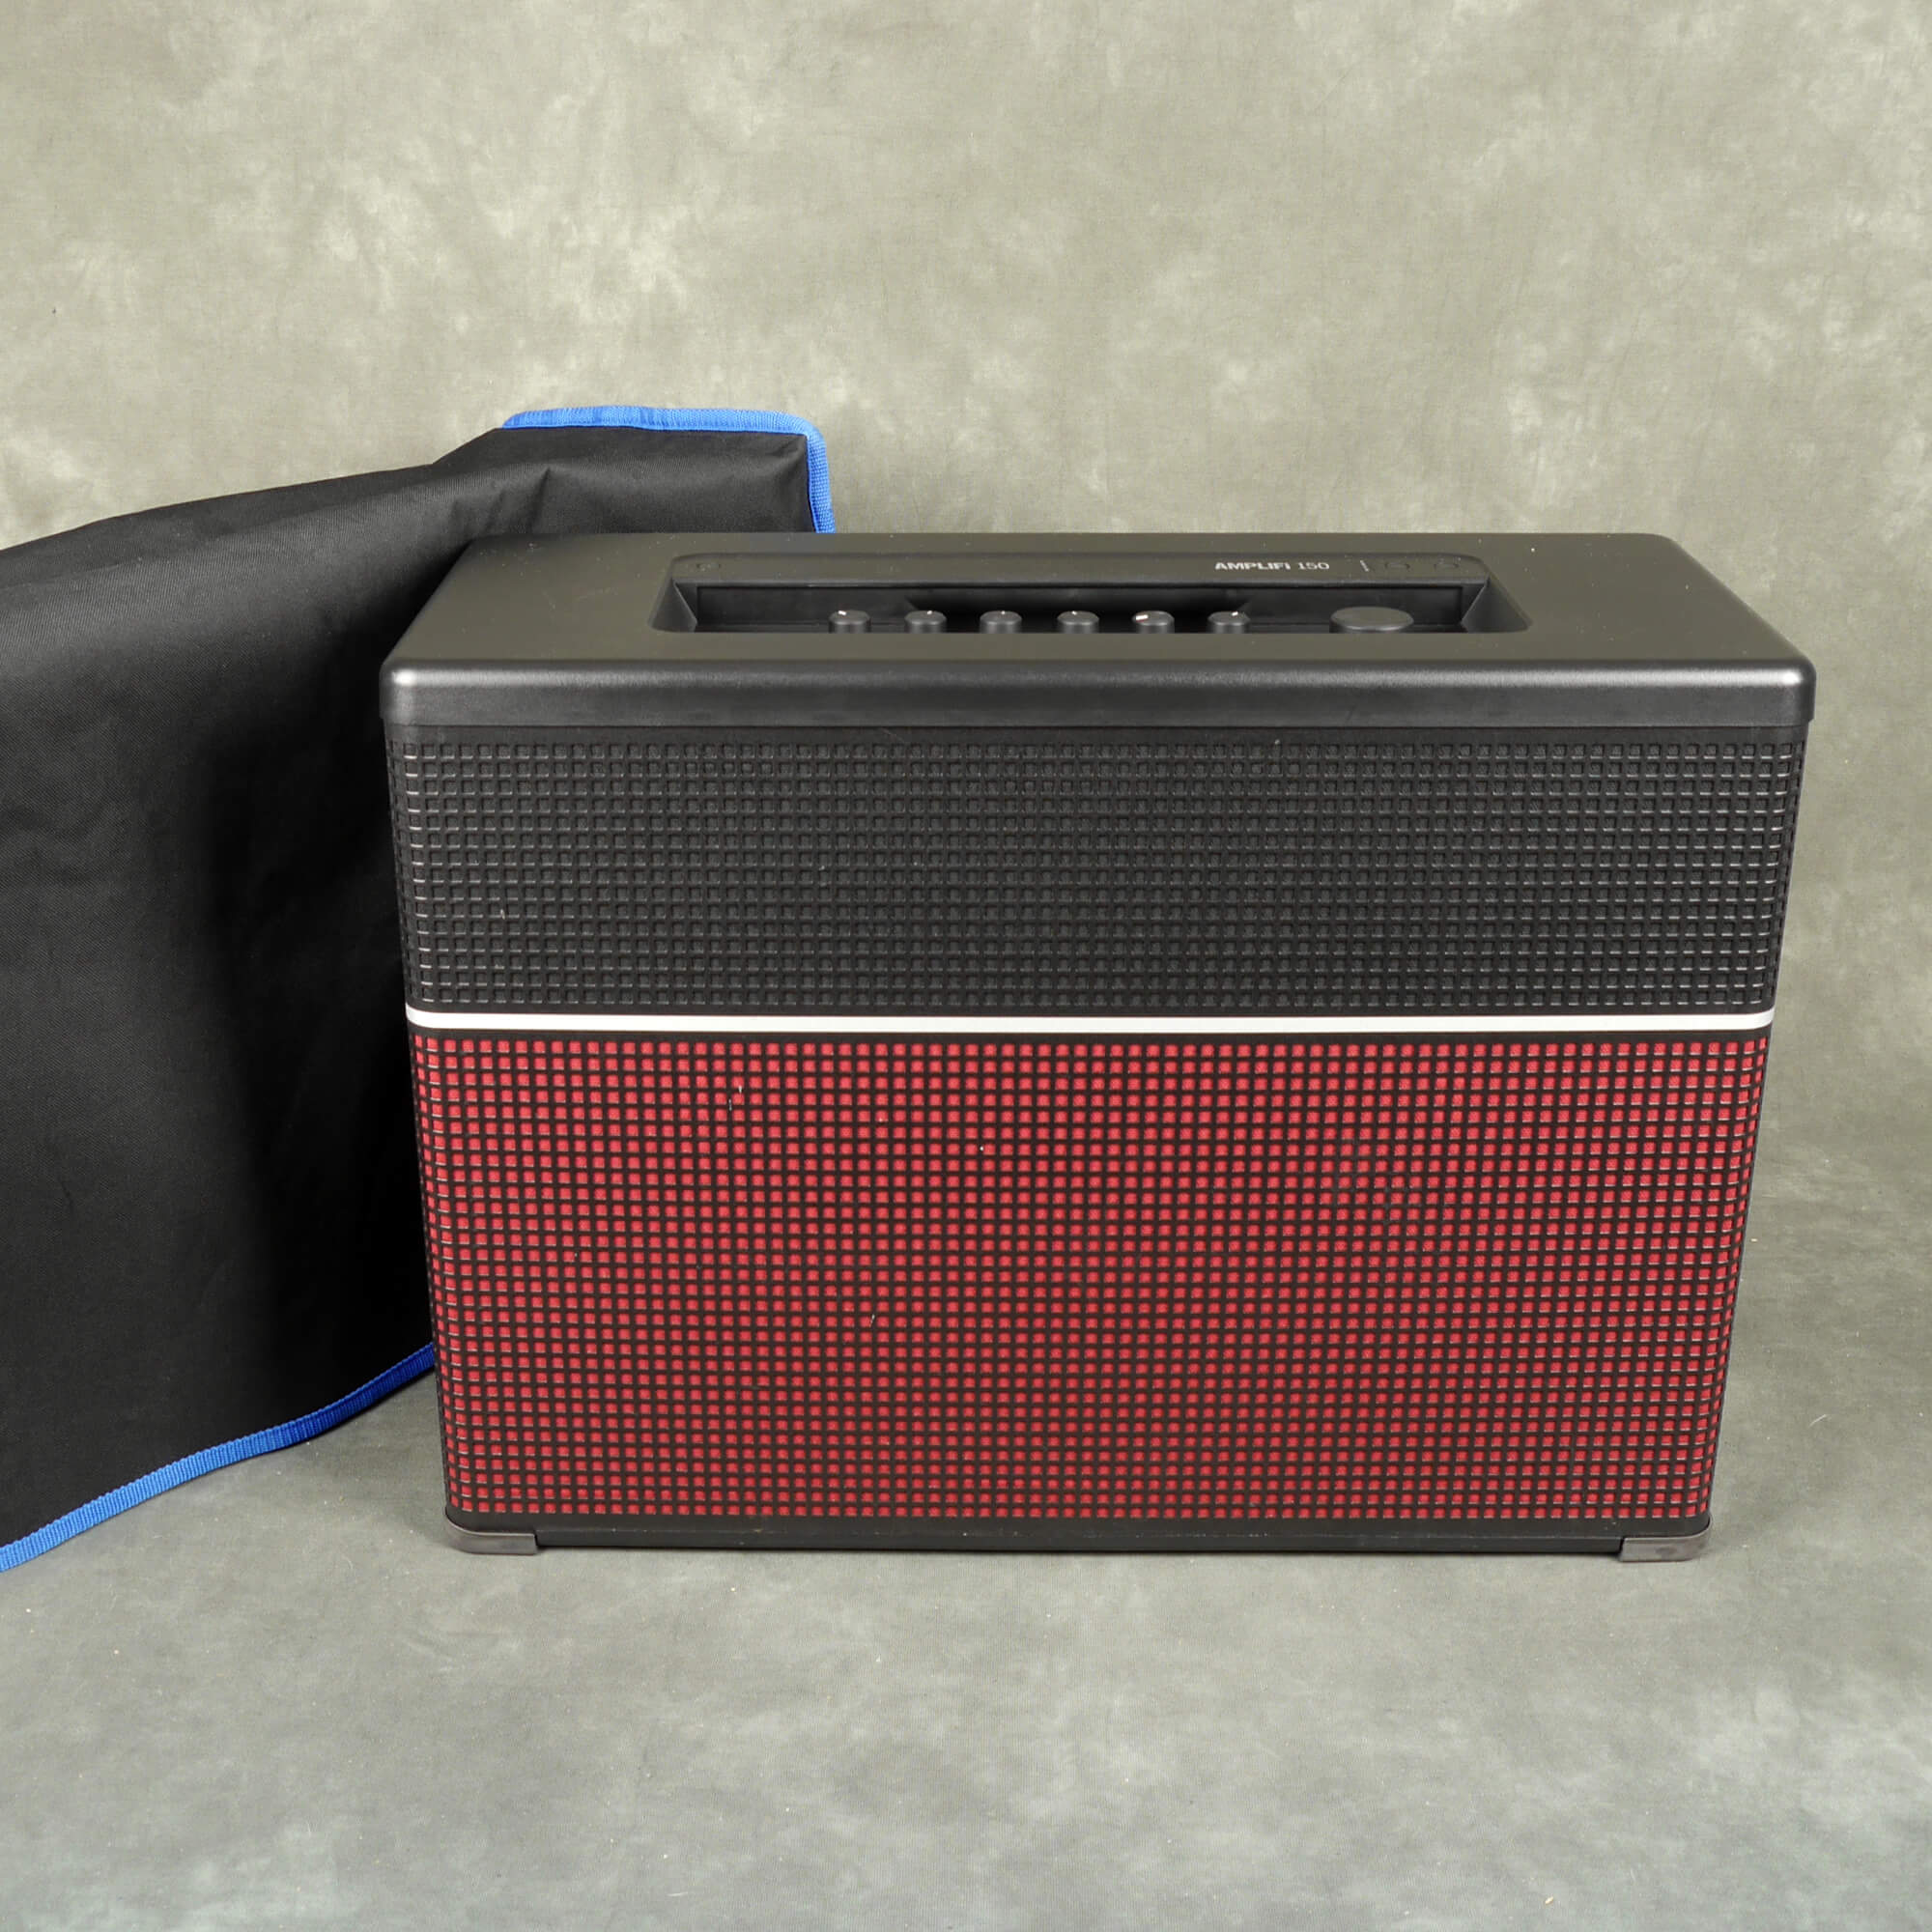 Line 6 AMPLIFi 150 Combo Amp with Bluetooth w/Cover - 2nd Hand